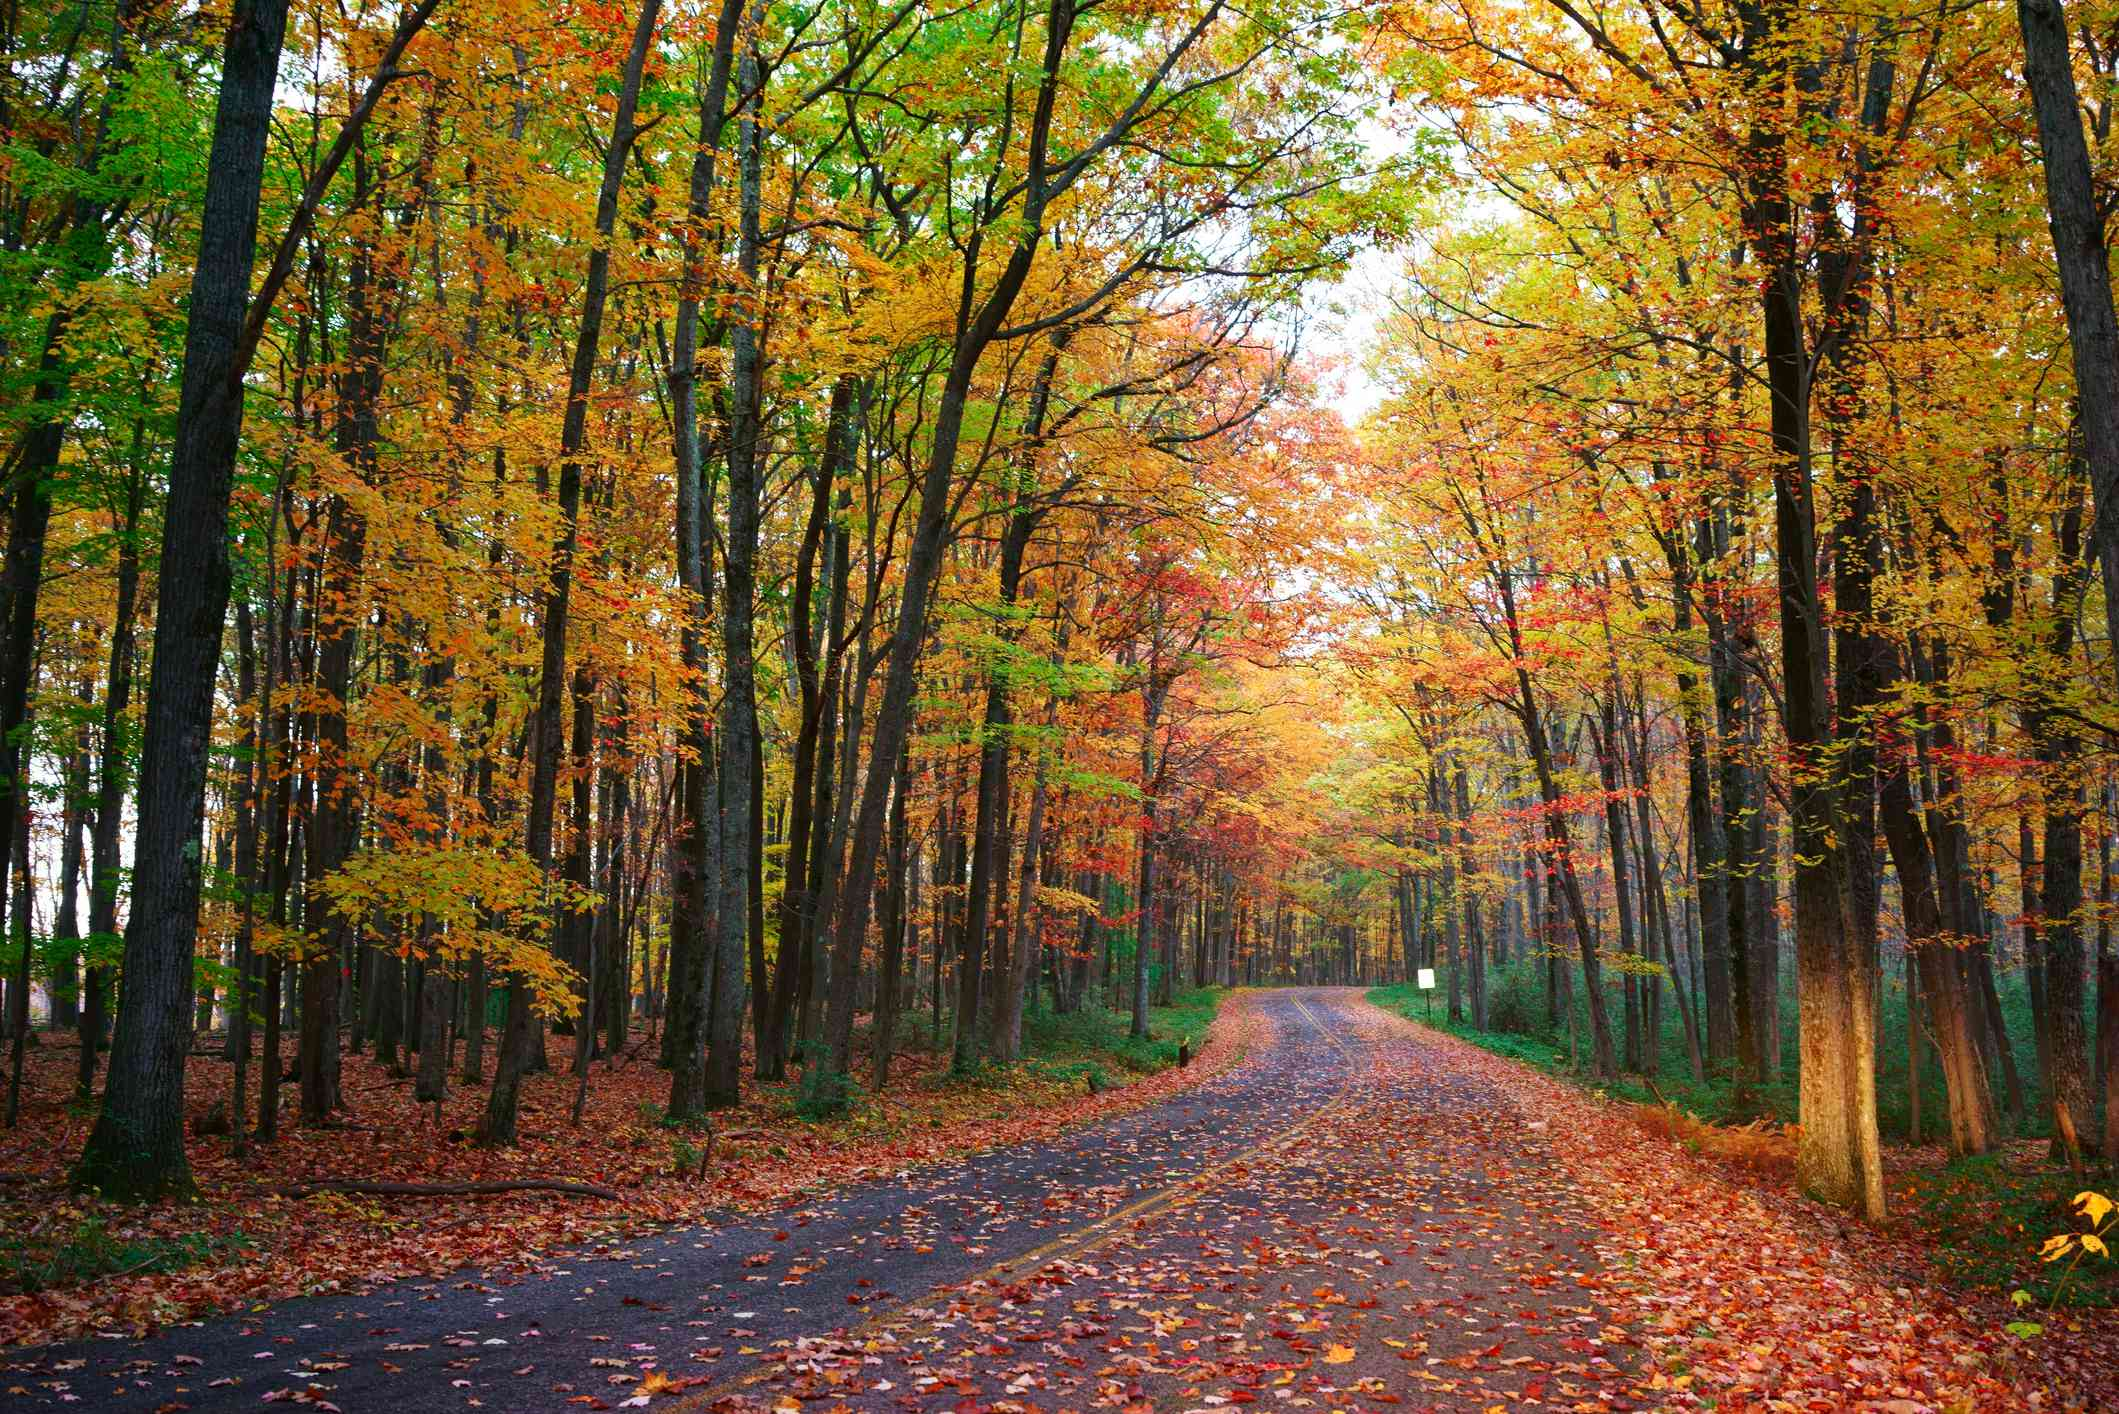 A walking path in Allegany State Park covered in fall leaves surrounded by tall trees in bright shades of red, yellow, orange, and green